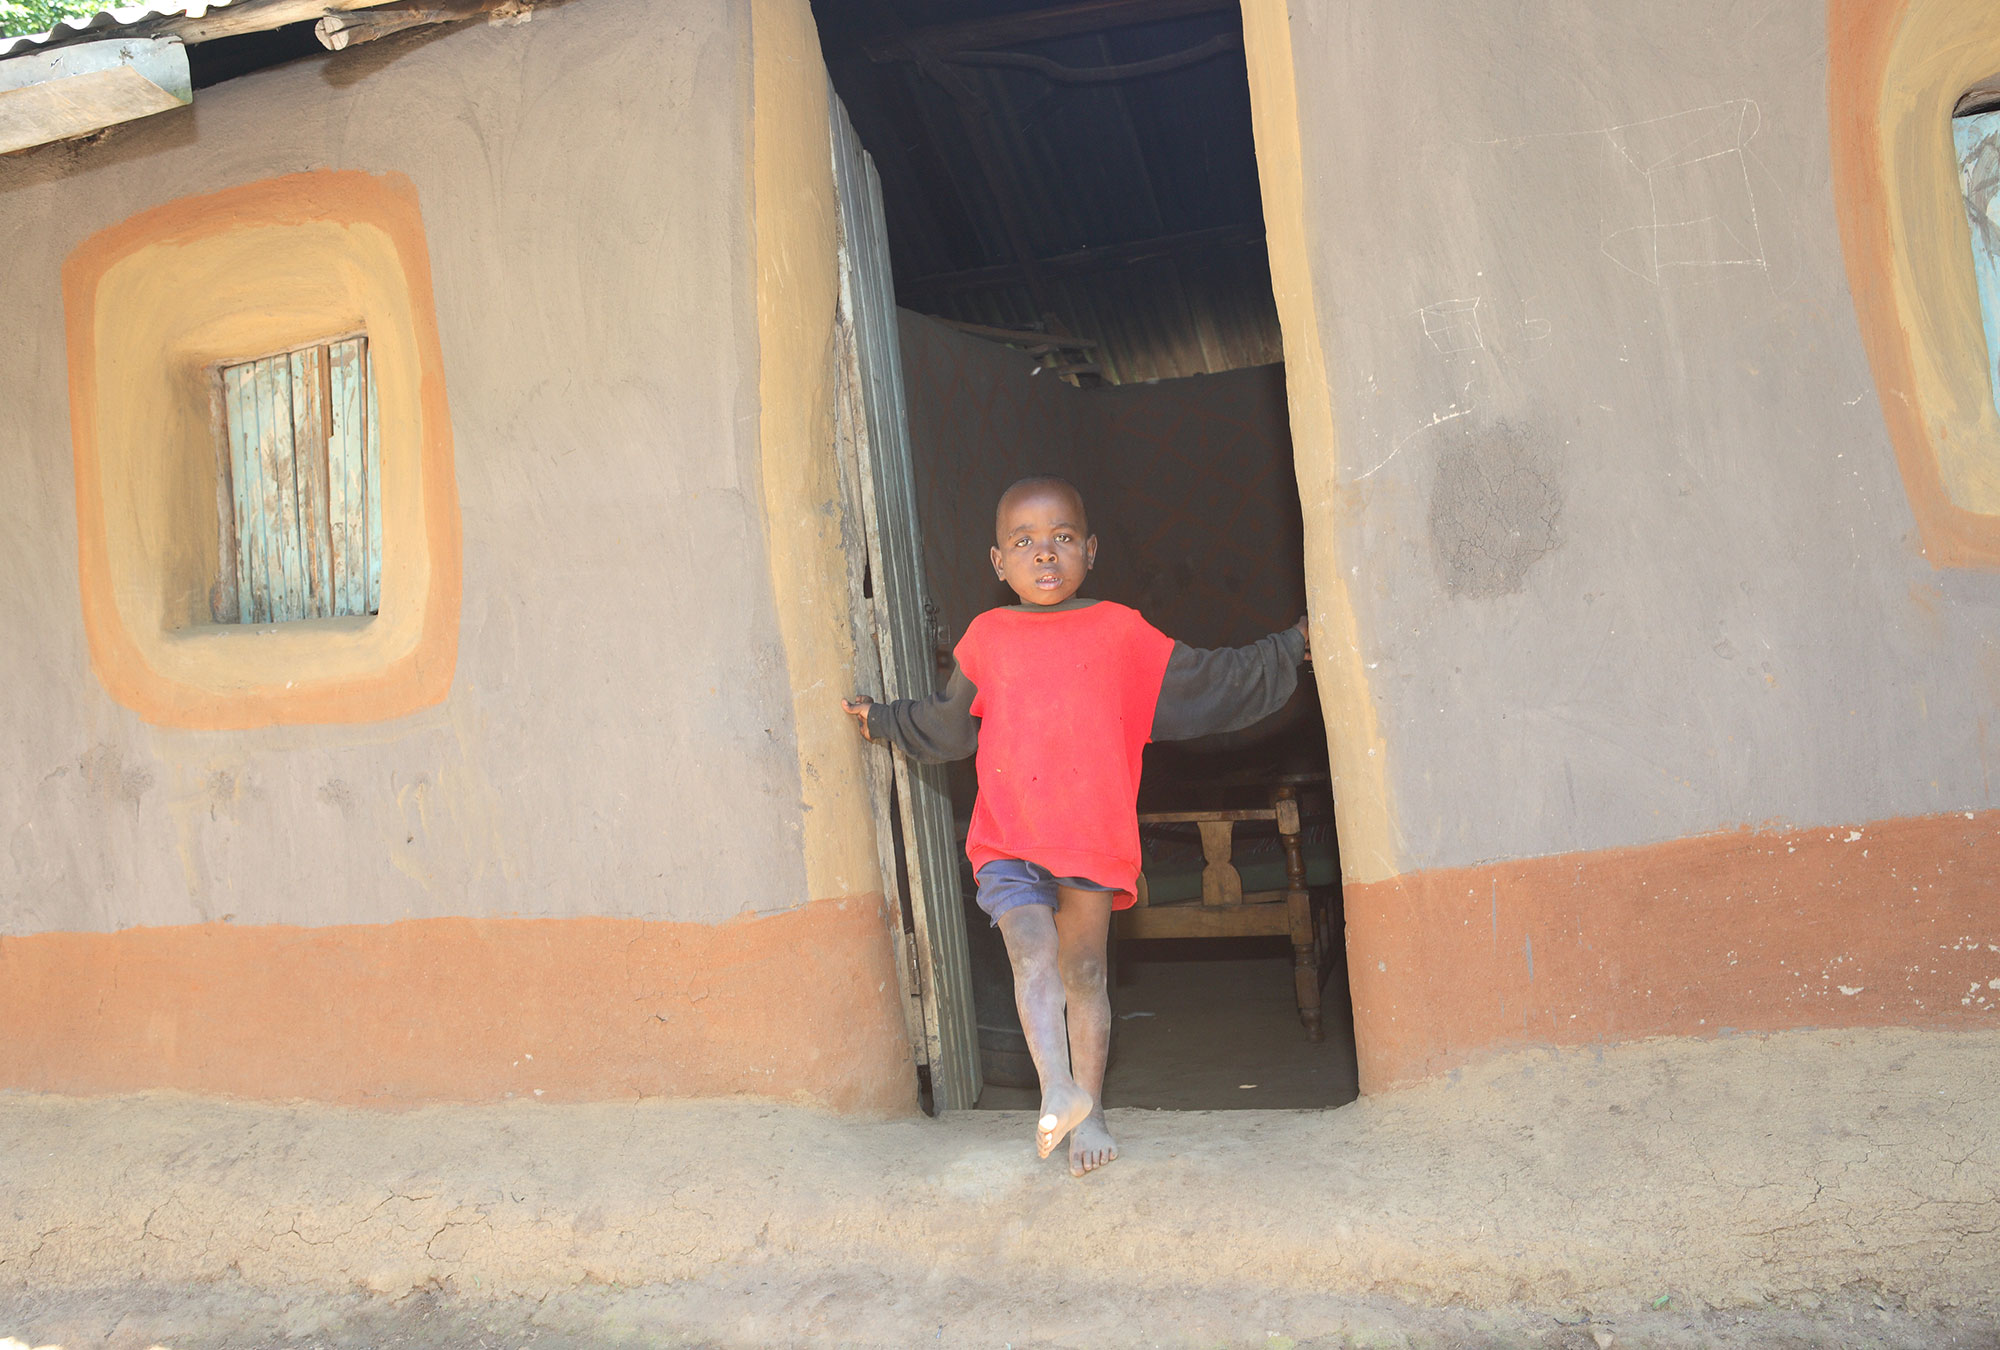 Young boy stands in doorway of house